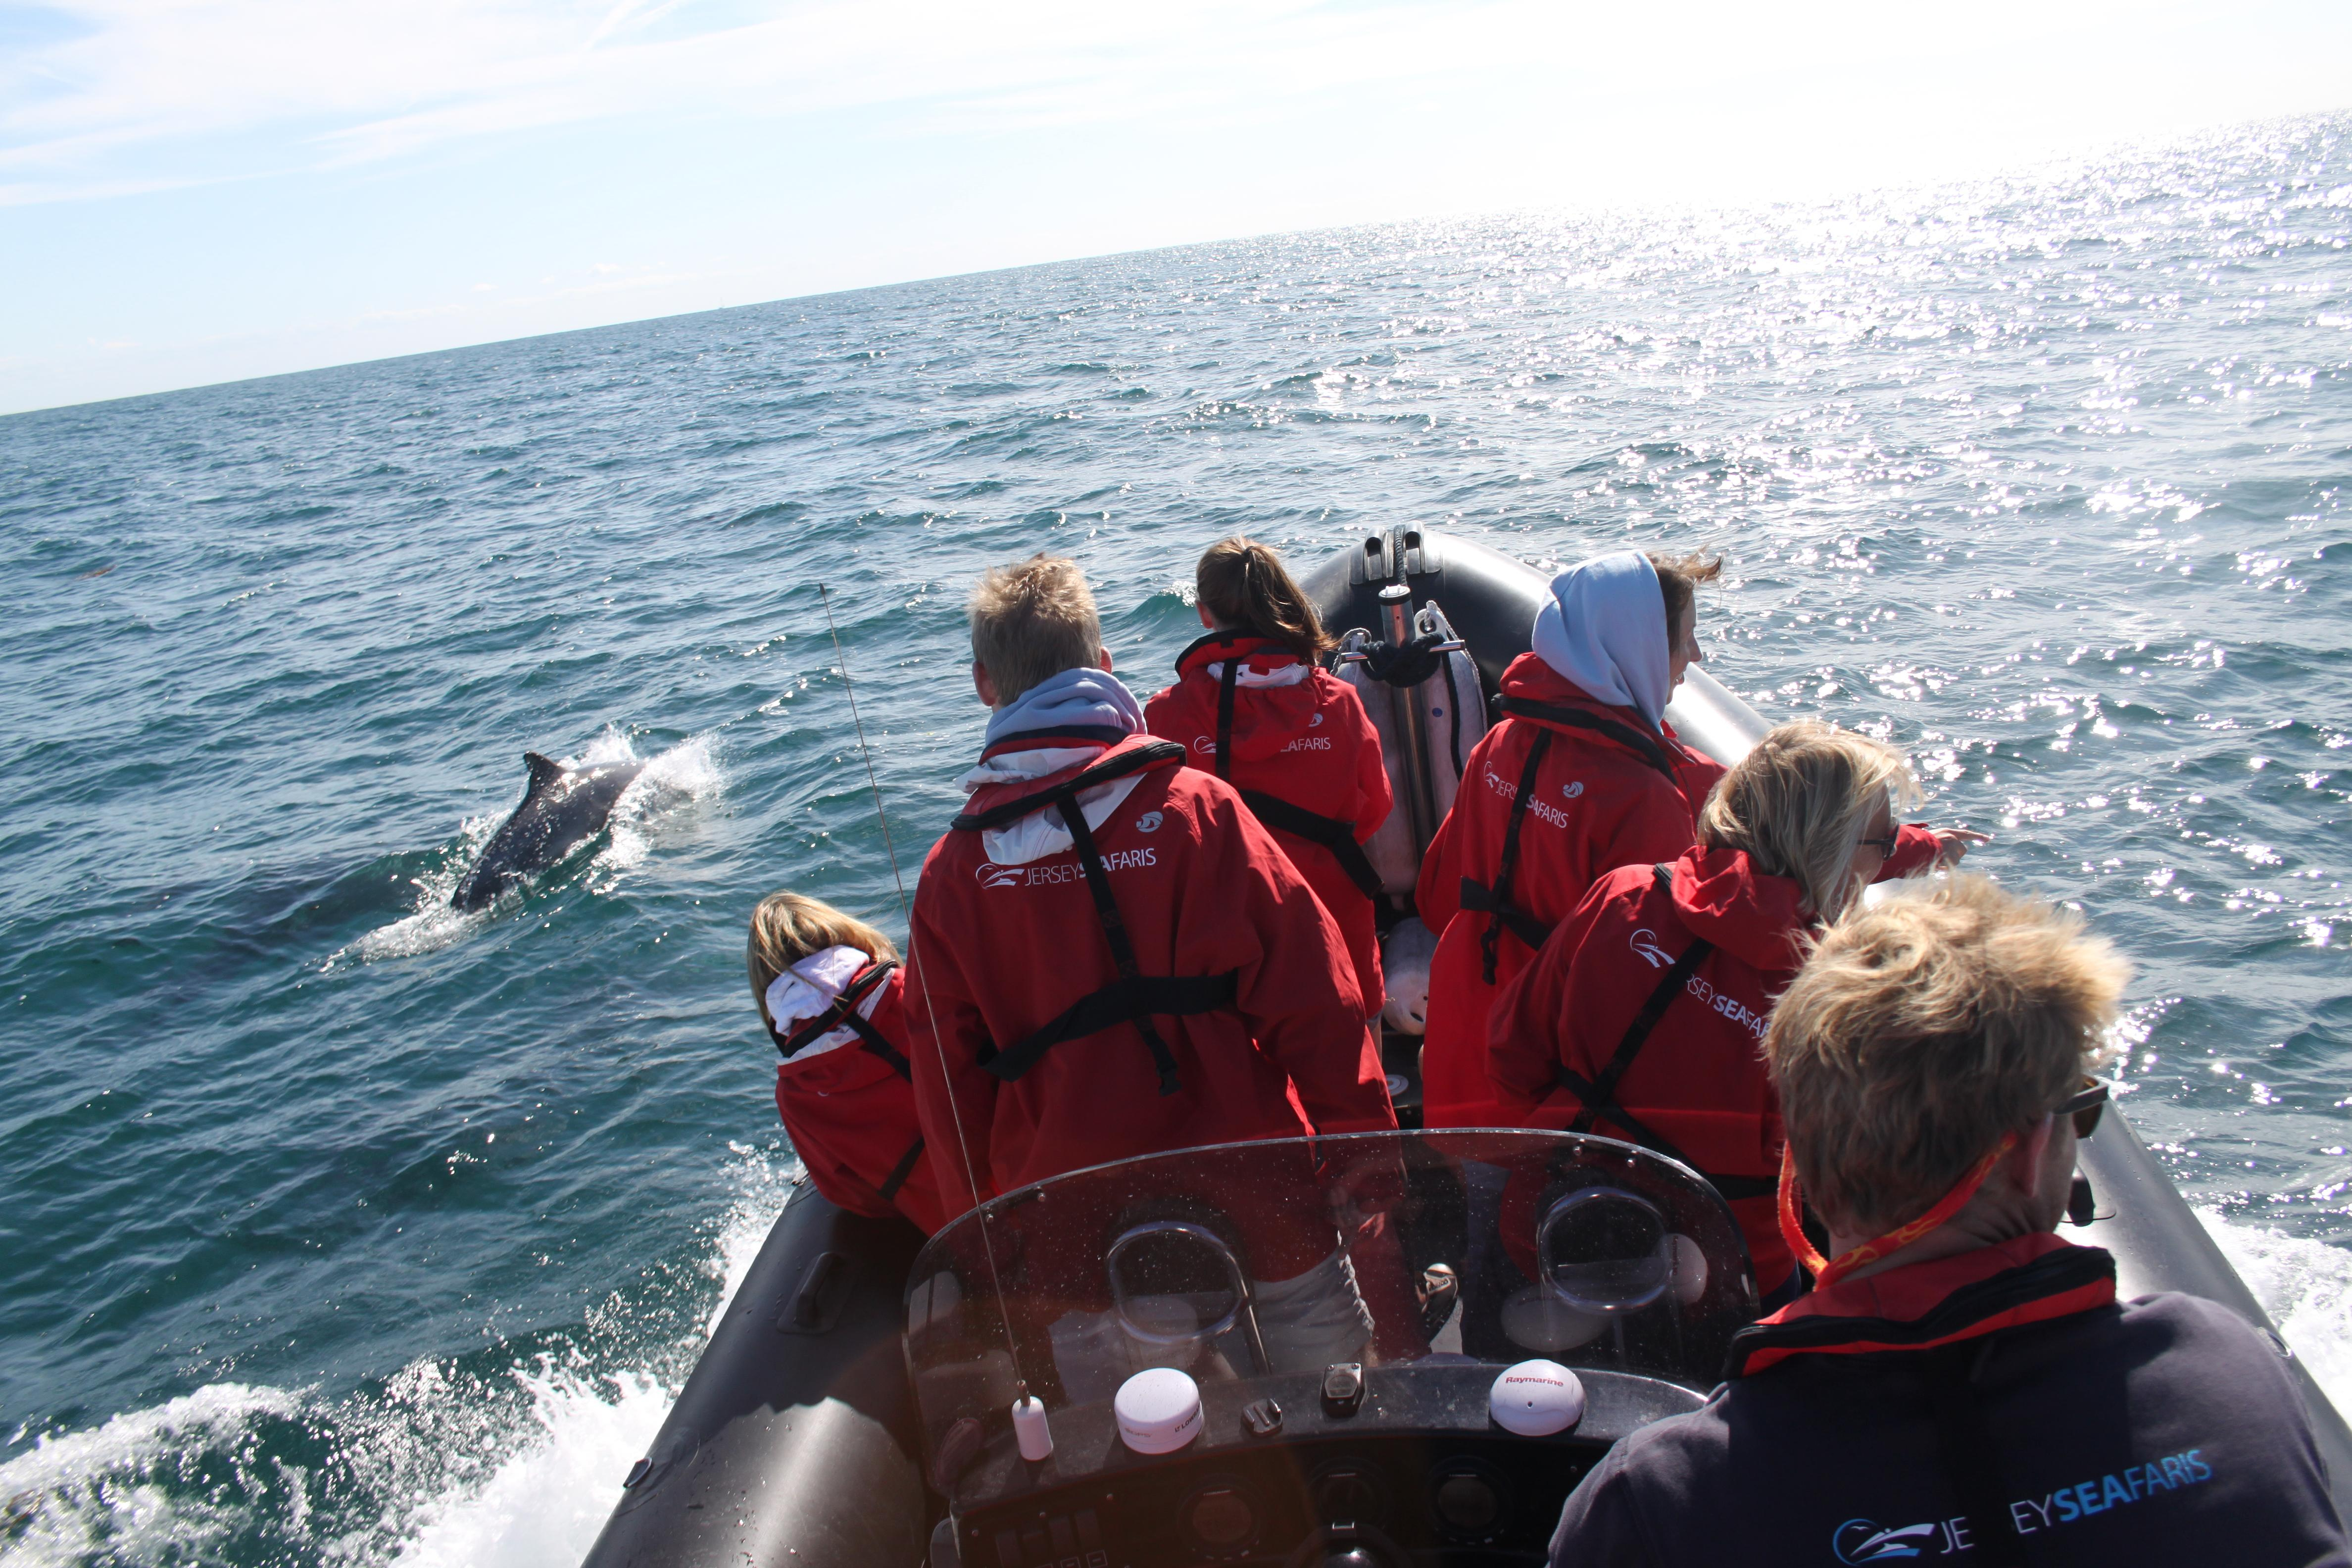 The Wild Side Of Jersey - Seafaris RIB Trip